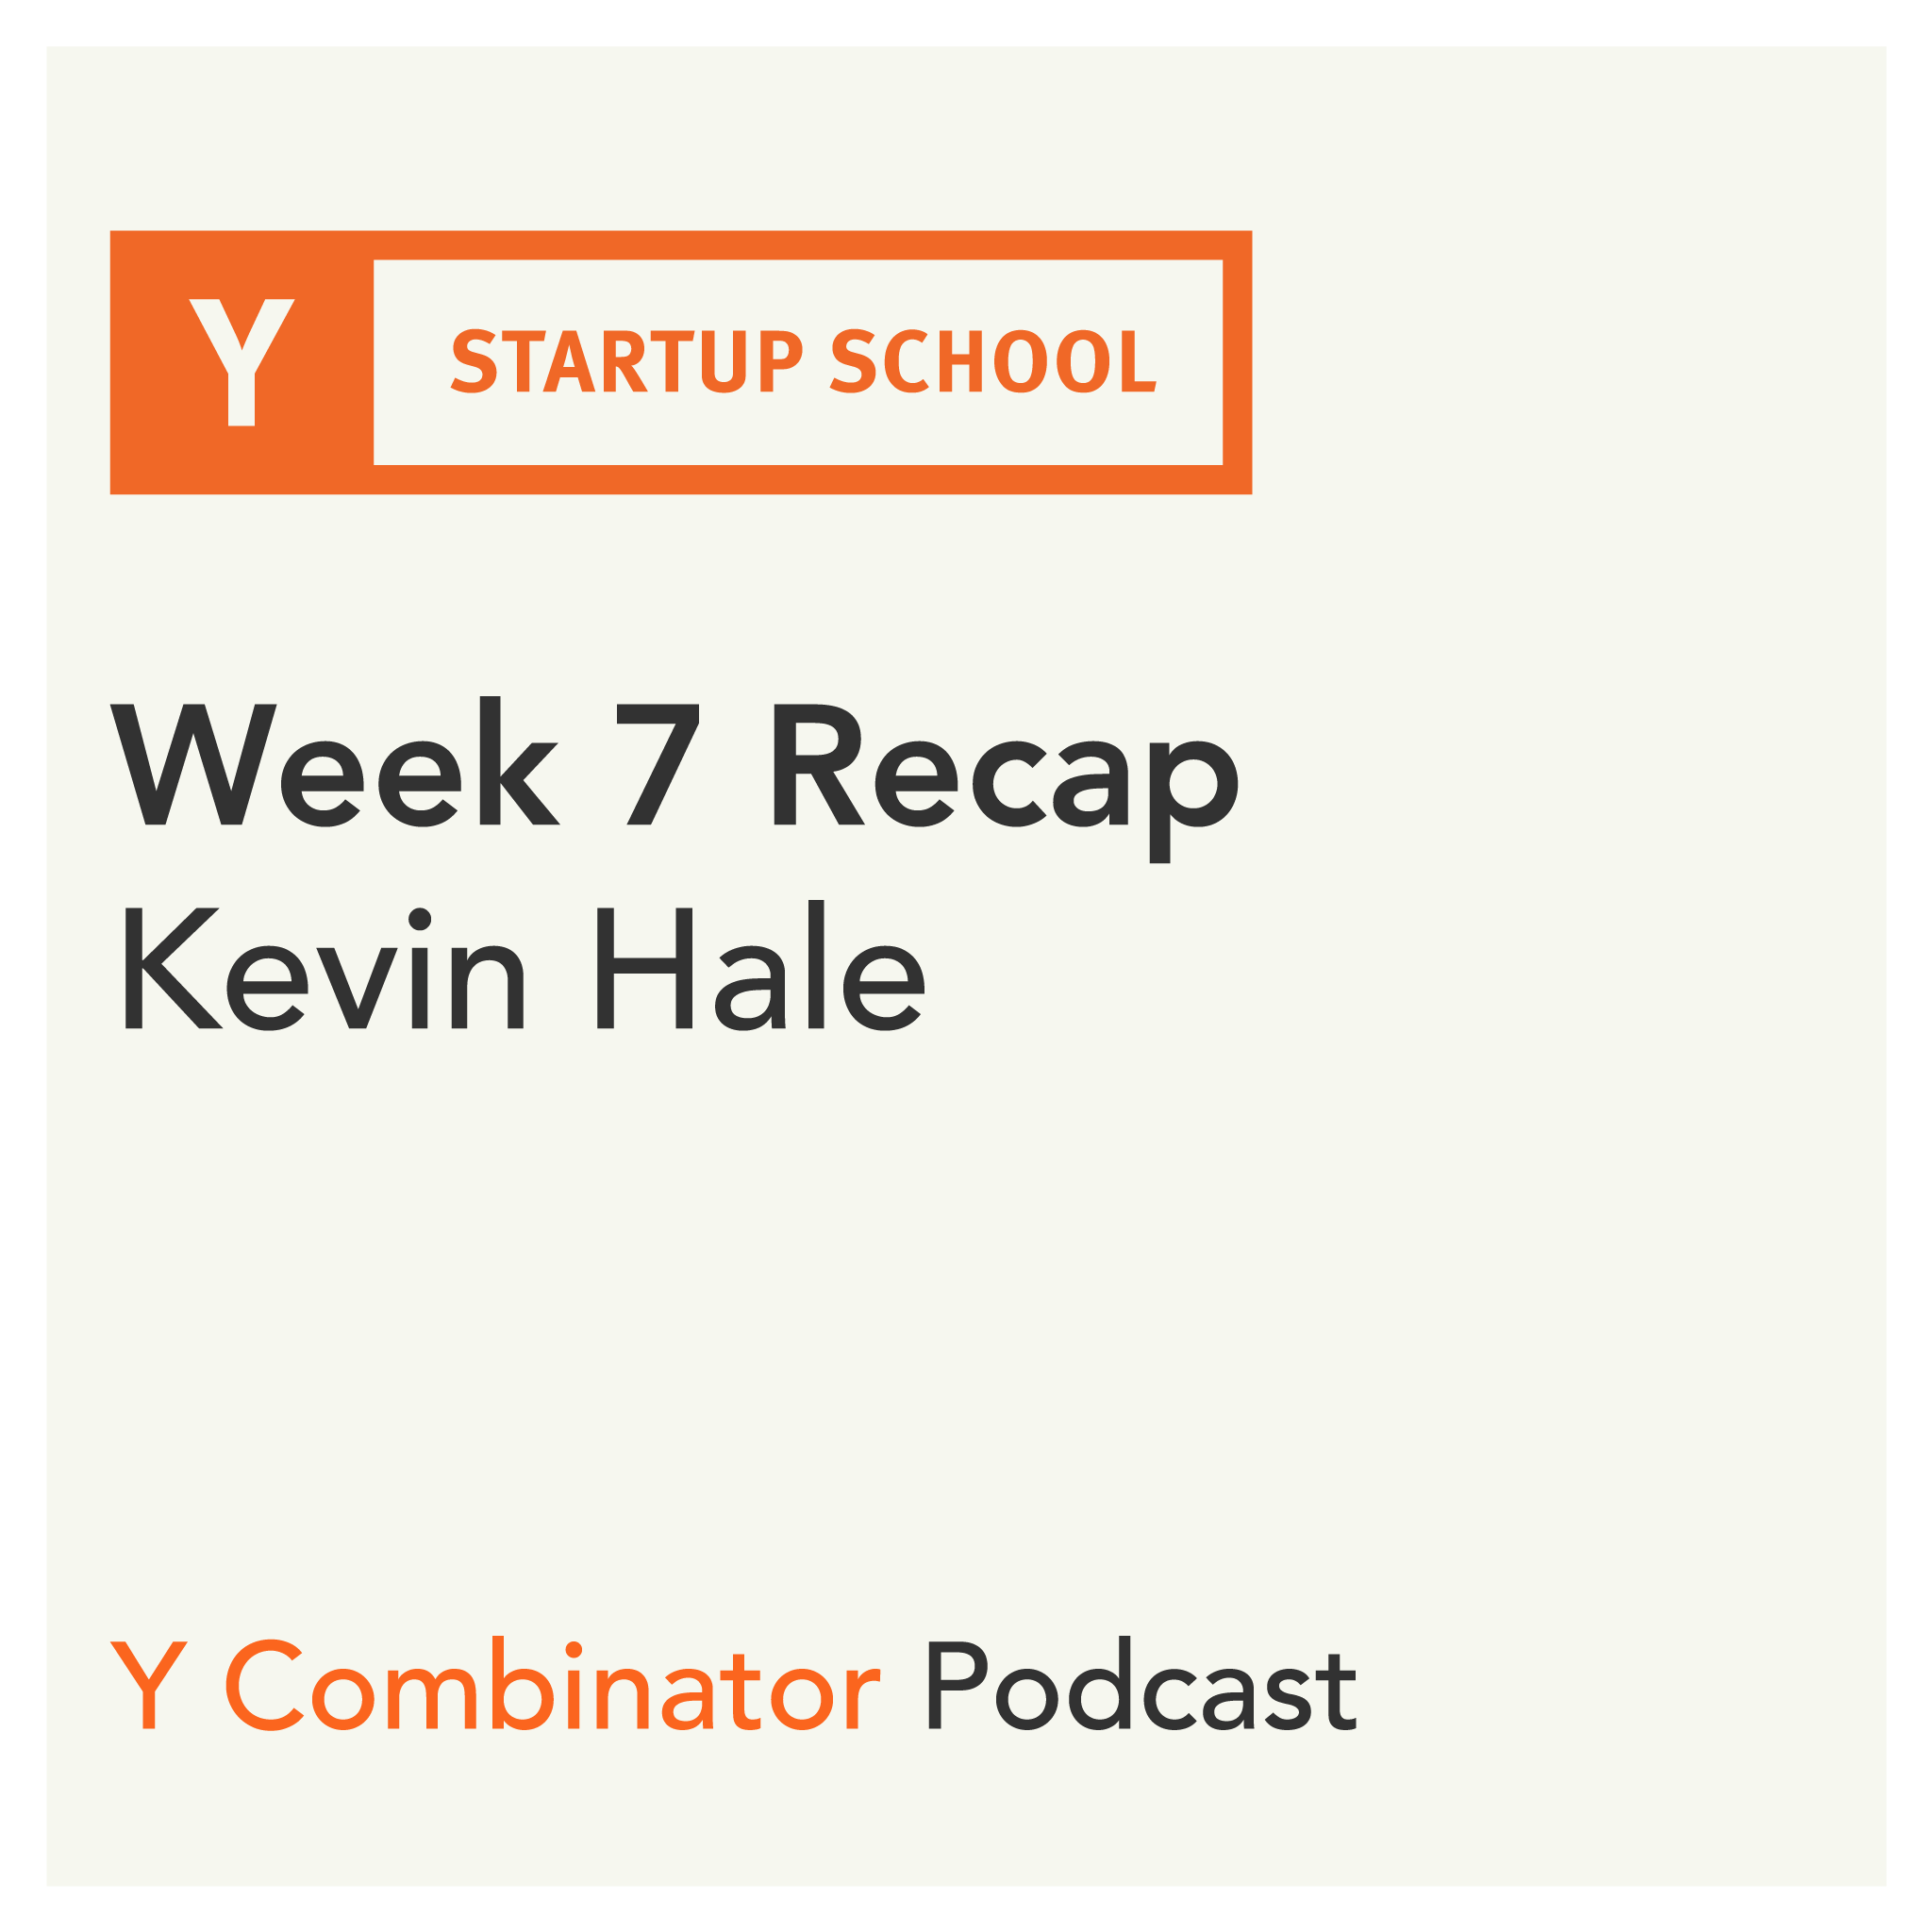 #148 - Startup School Week 7 Recap - Kevin Hale on Conversion Rates and Pricing